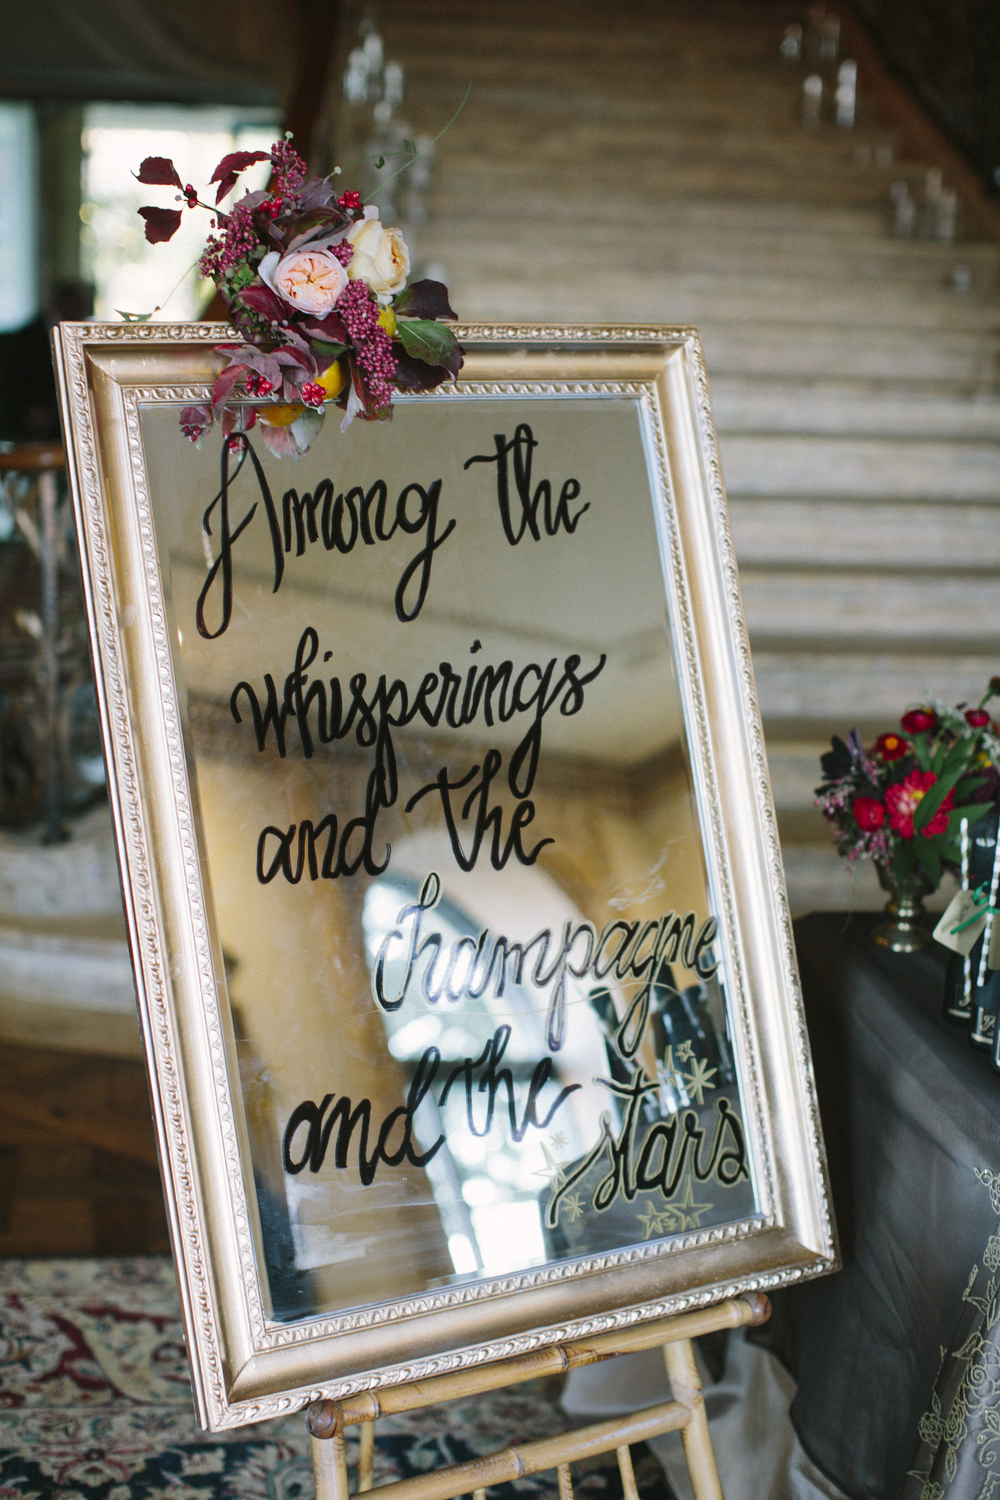 """Our mirrored sign read,""""Among the whisperings and the champagne and the stars,"""" to inspire guests to dance the night away in romance just like in The Great Gatsby."""